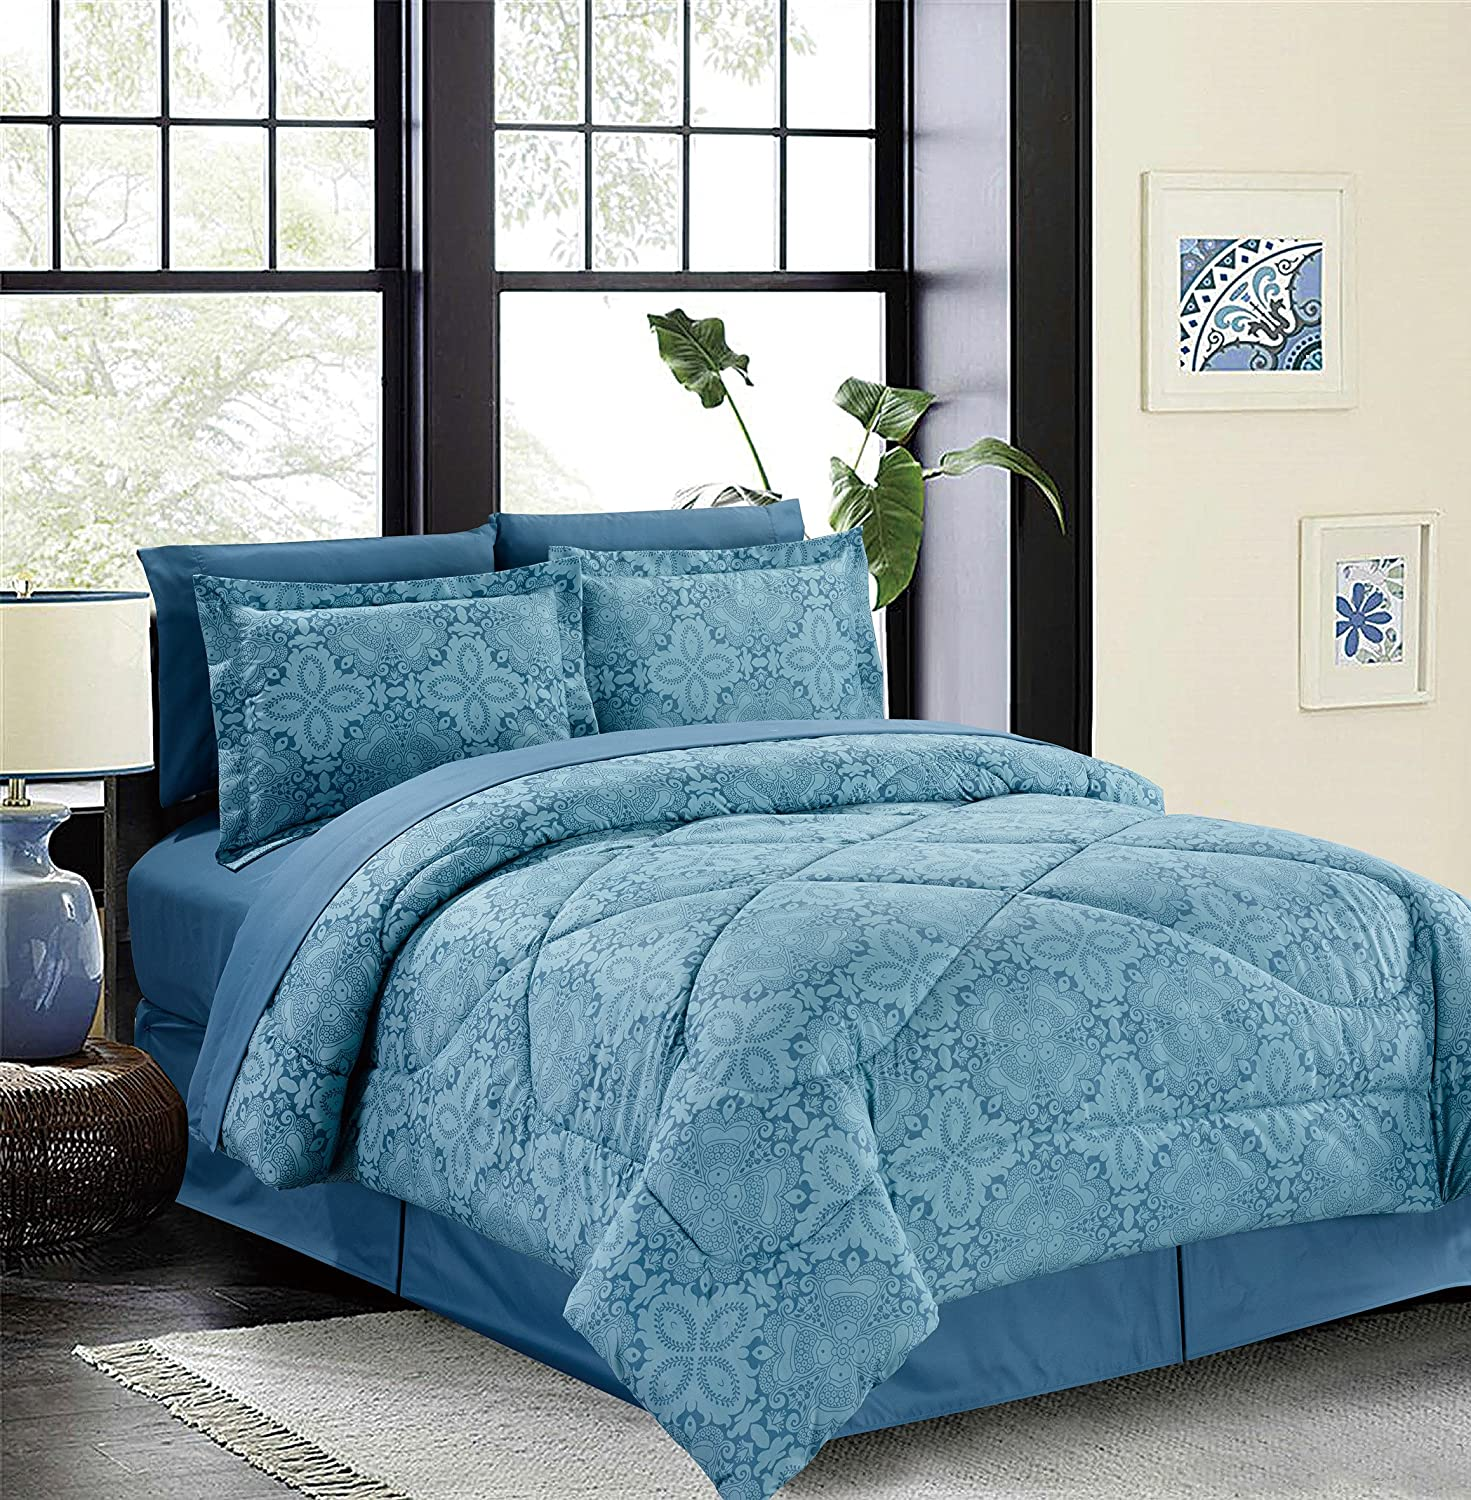 Vintage Damask 8-Piece Bed in a Bag Set Teal (Double/Full) MHC